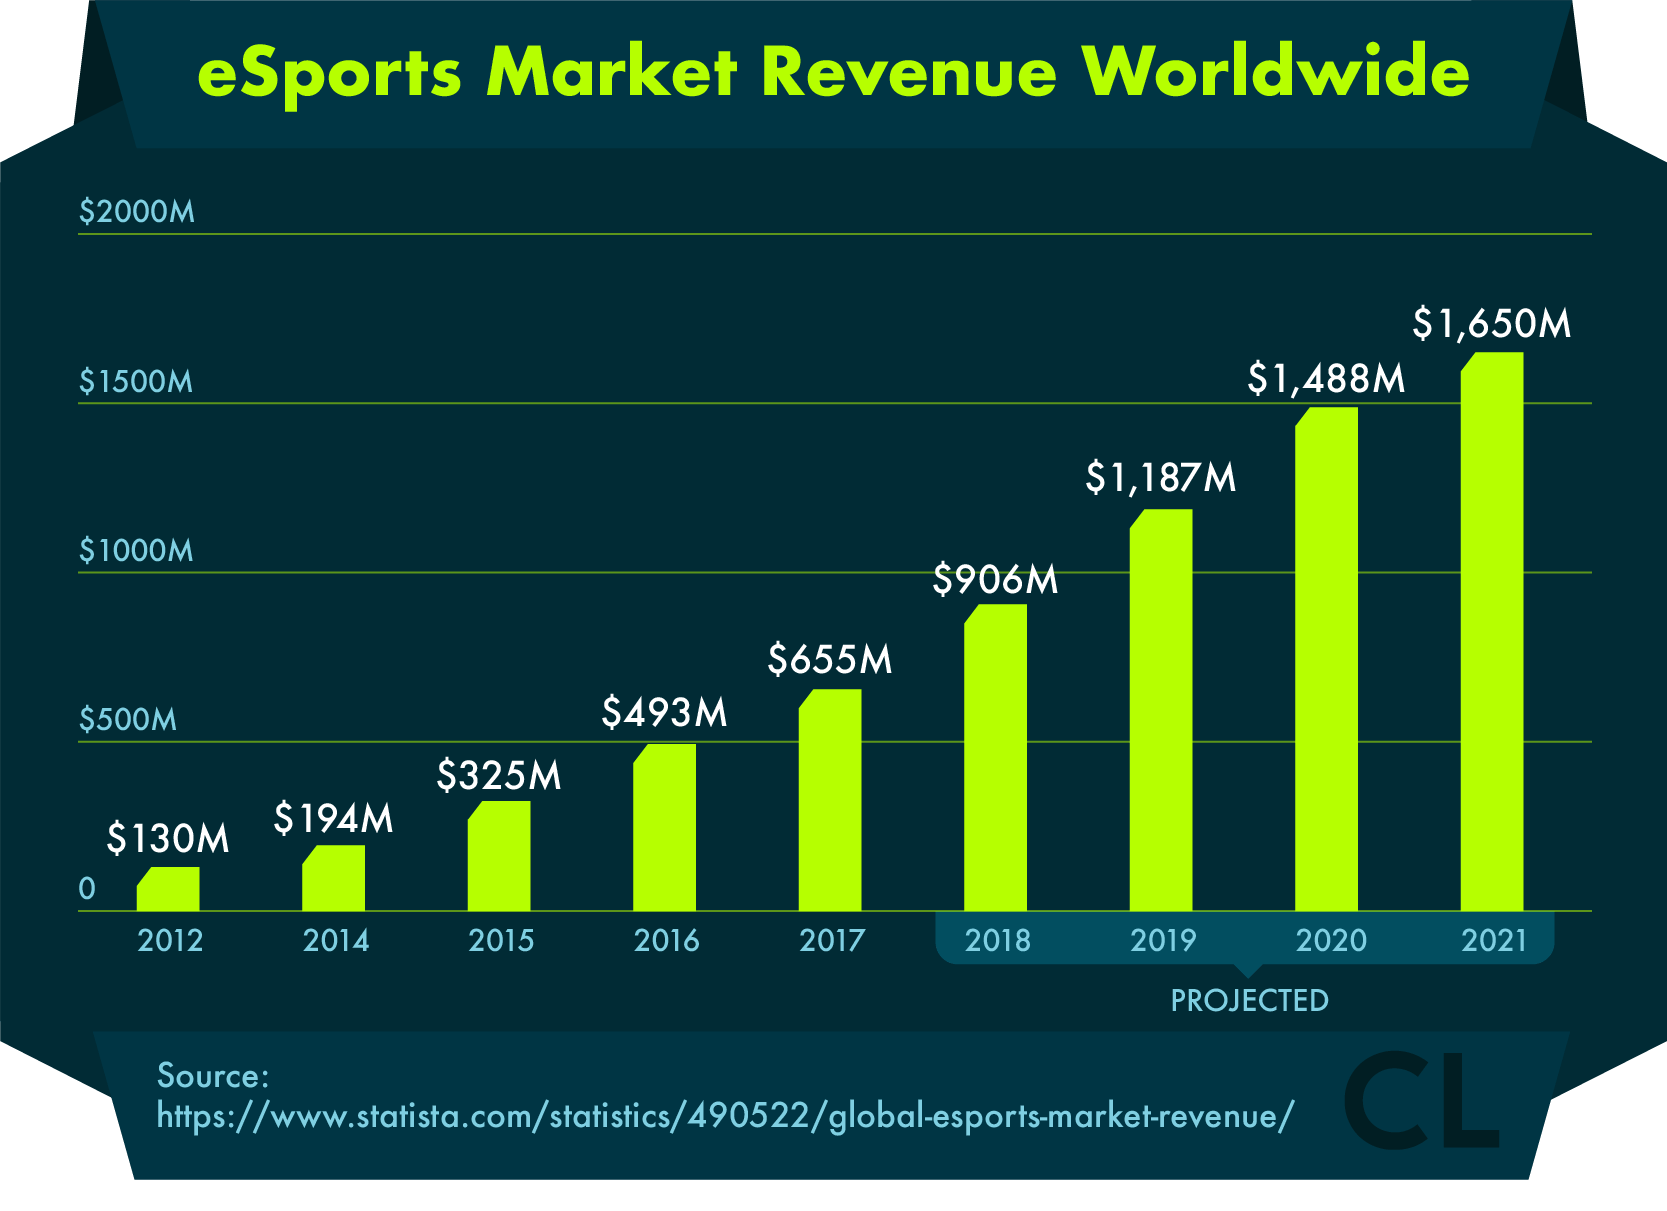 eSports Market Revenue Worldwide with Projections 2012 - 2021